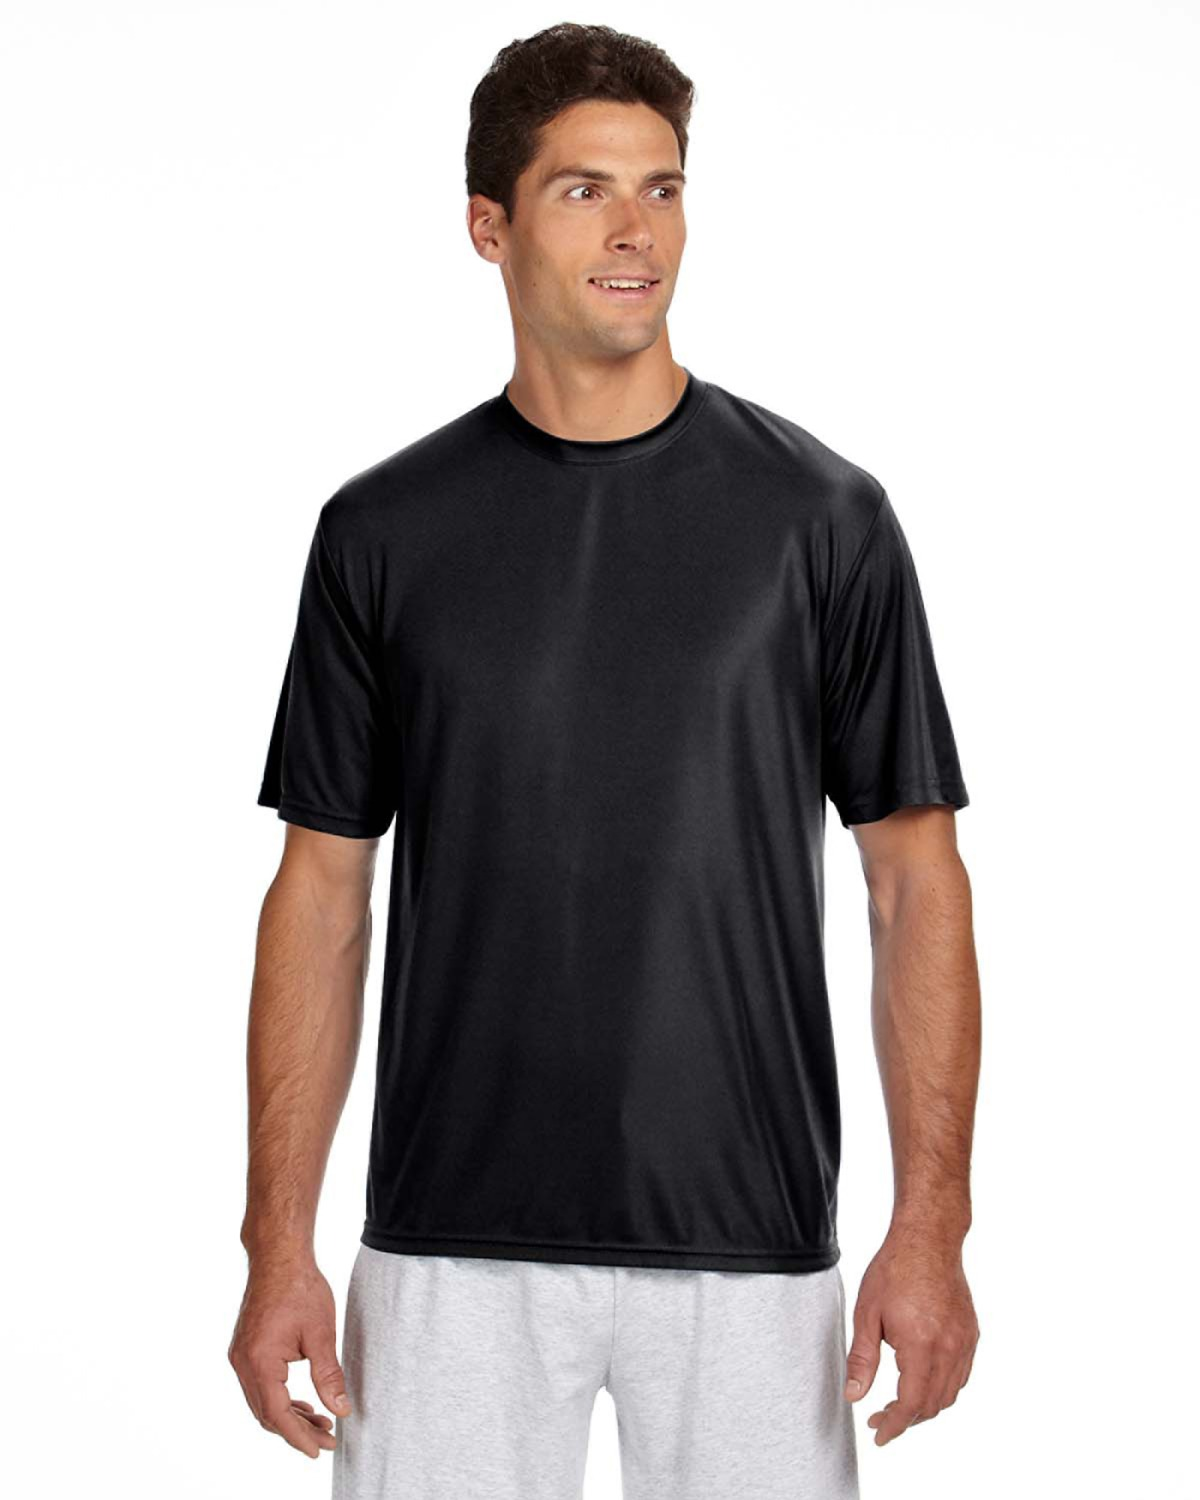 A4 N3142 - Adult Cooling Performance Tee